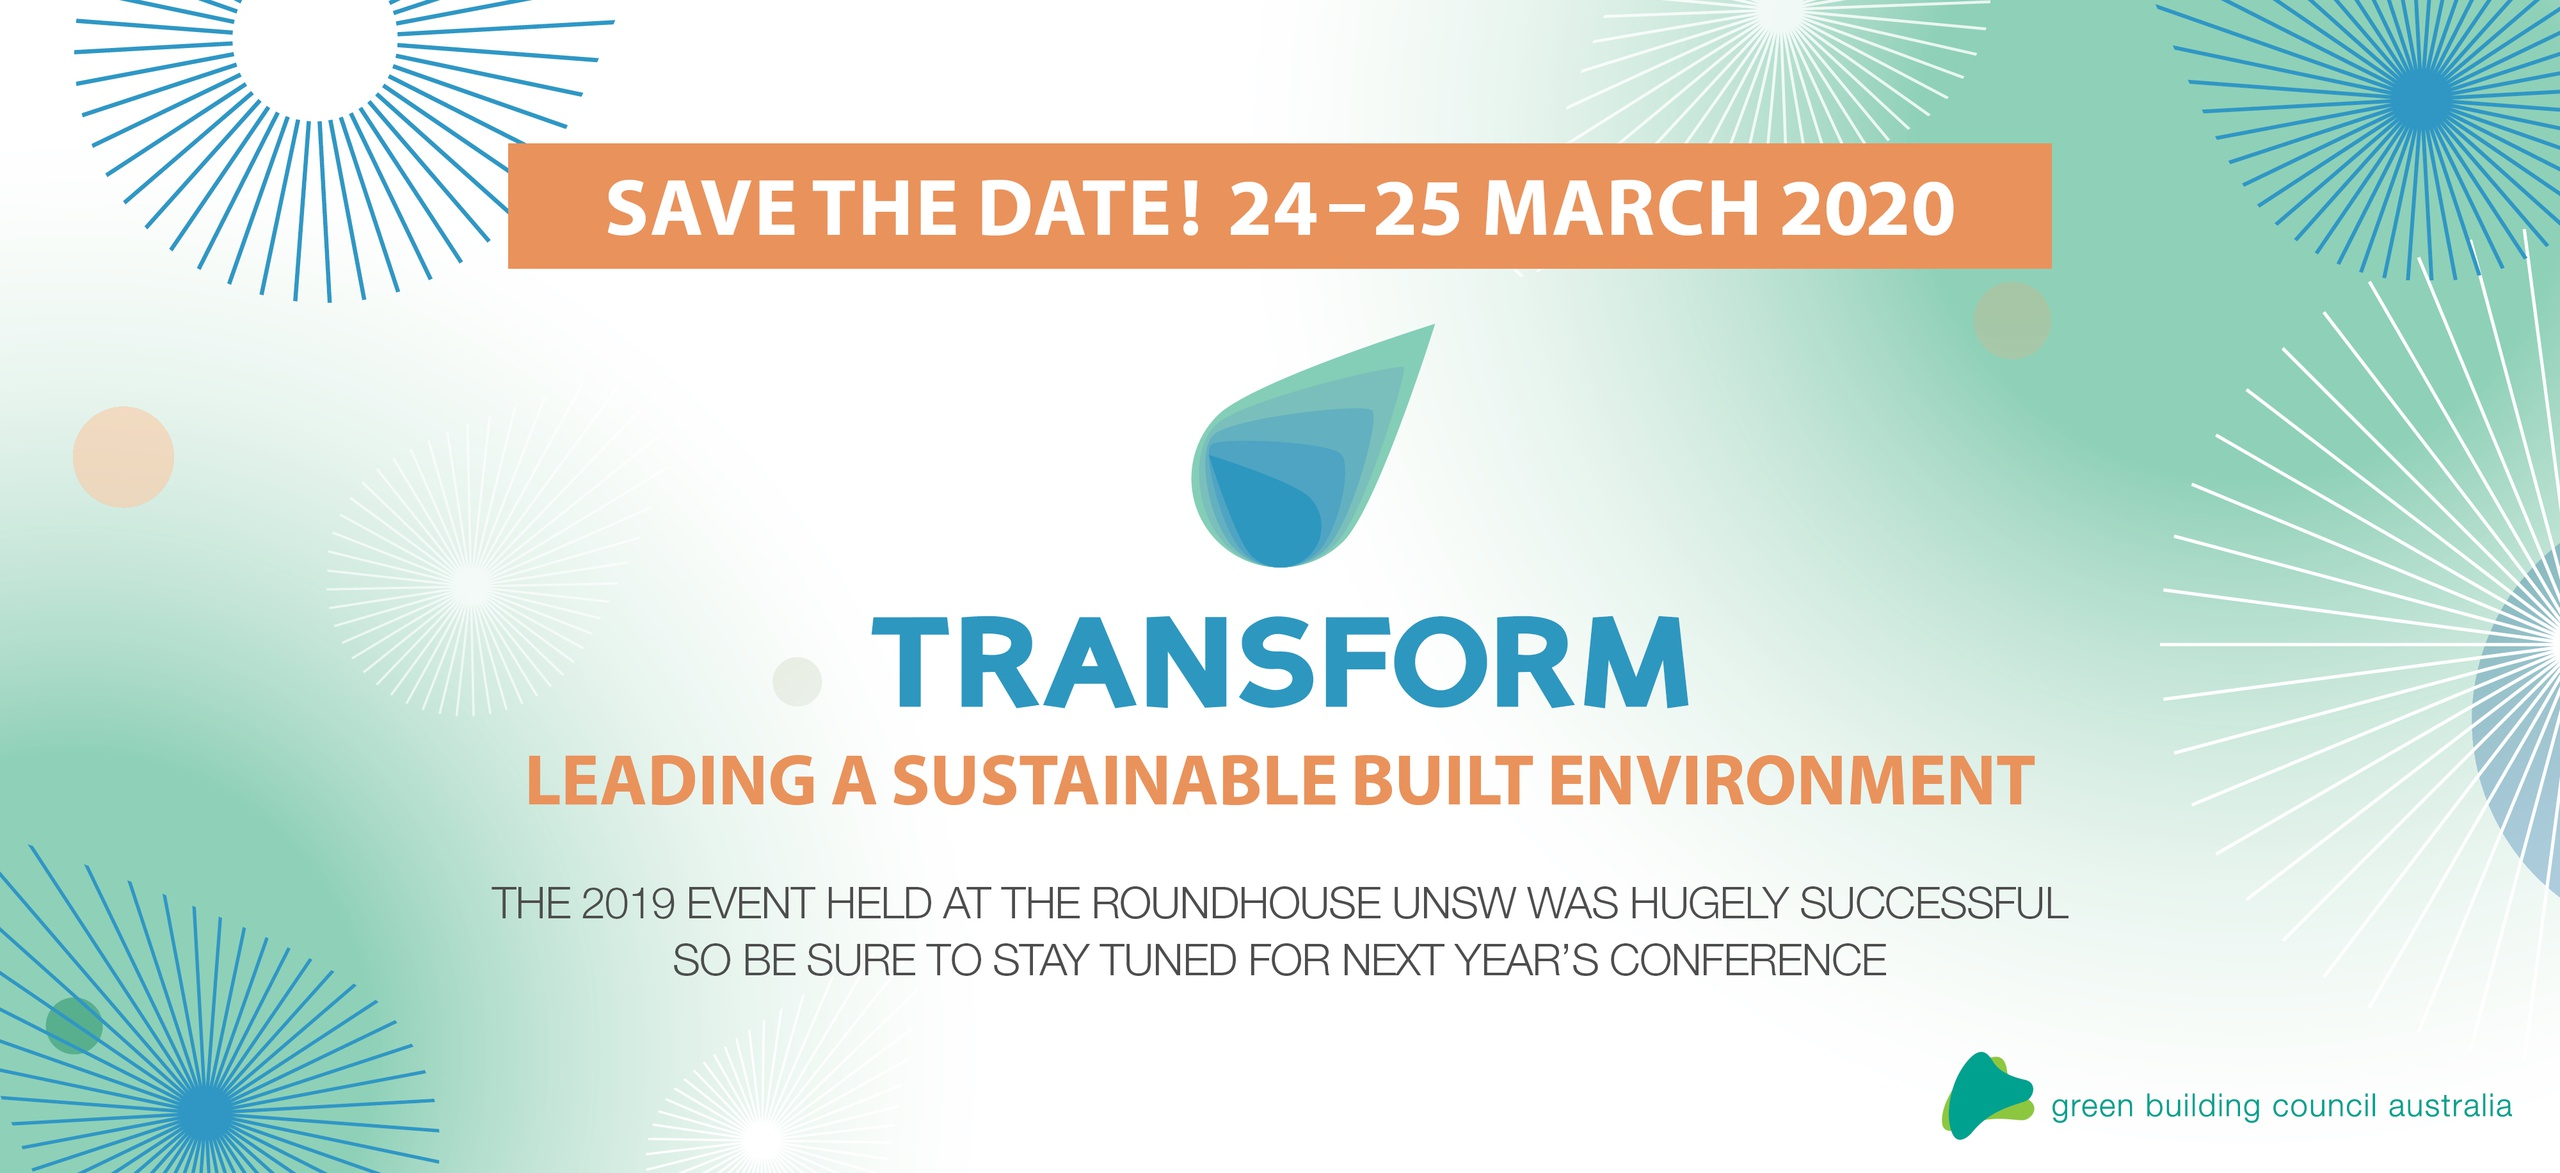 TRANSFORM 2020 save the date